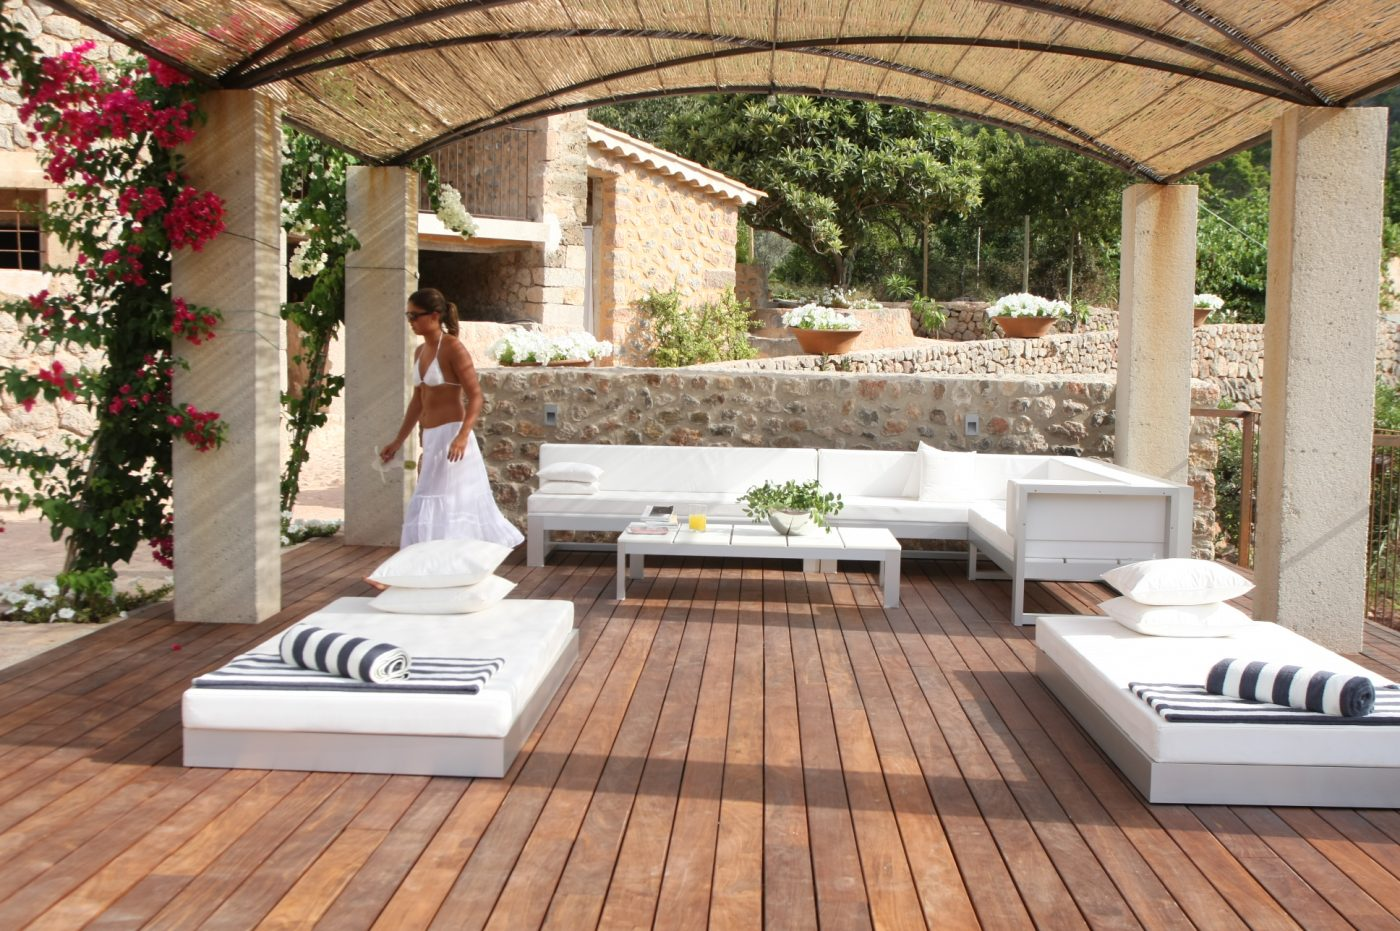 Lemon orchard estate a glorious luxury villa in mallorca for Decoracion de terrazas exteriores